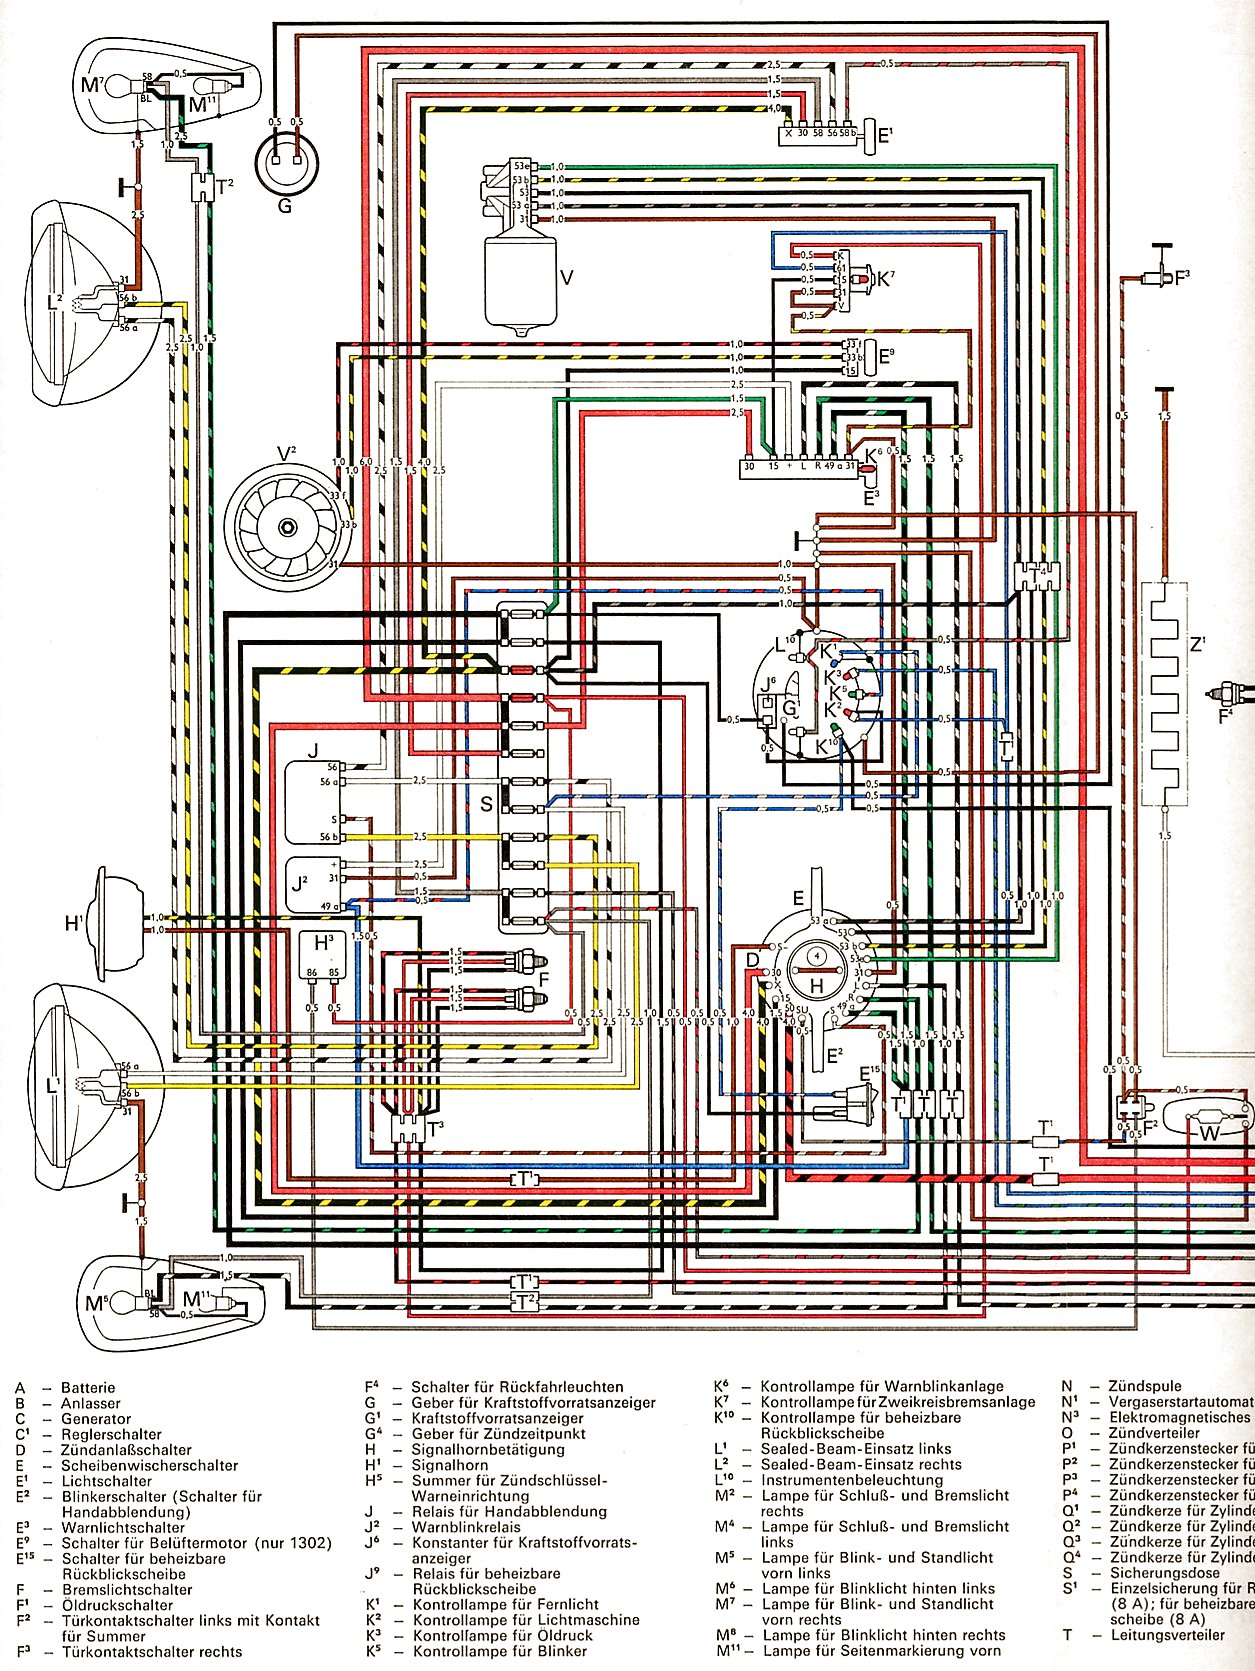 1300_and_1302_USA_from_August_1971 1 vw bug wiring 1969 vw starter wiring diagram \u2022 wiring diagrams j 1971 vw bus wiring diagram at crackthecode.co